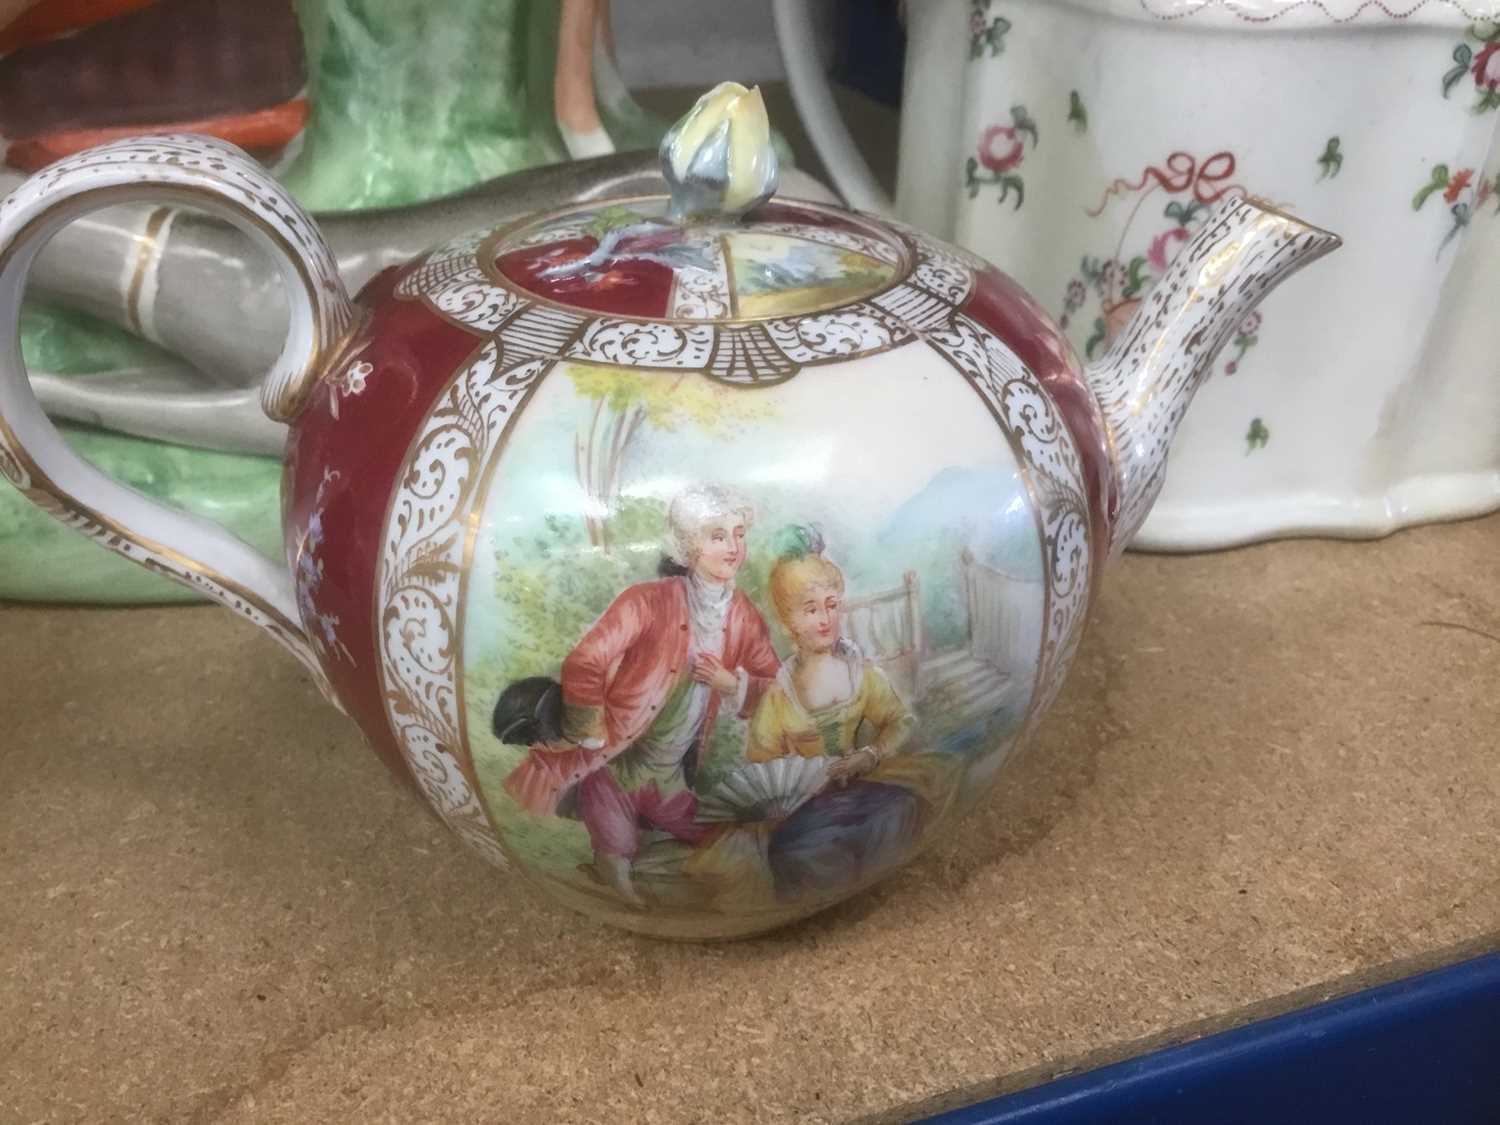 Meissen porcelain teapot (cancelled mark so a 'second'), Newhall teapot, Staffordshire greyhound - Image 2 of 6